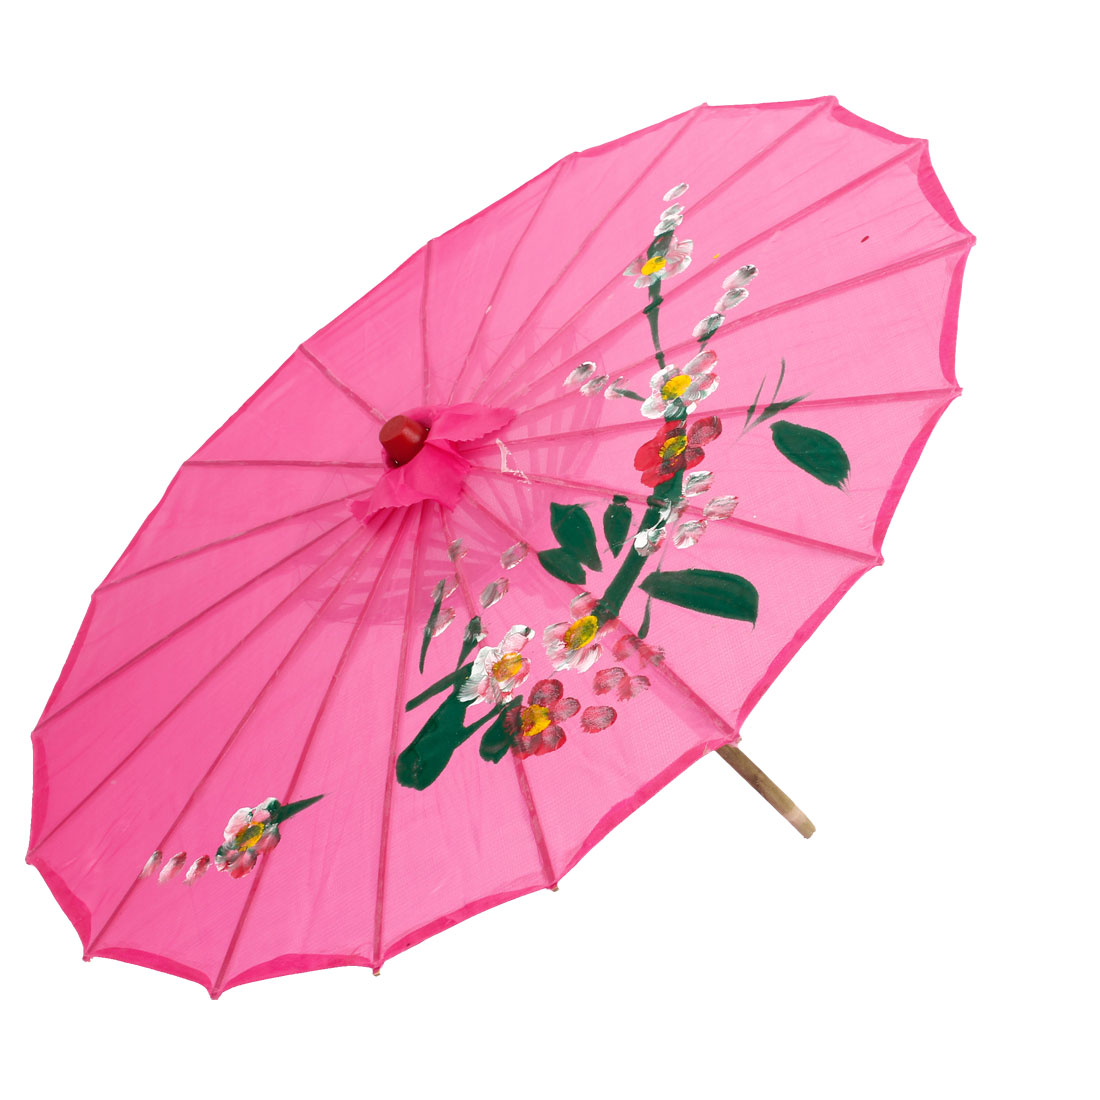 Flower Pattern Fushcia Cover Bamboo Foldable Dance Umbrella Parasol